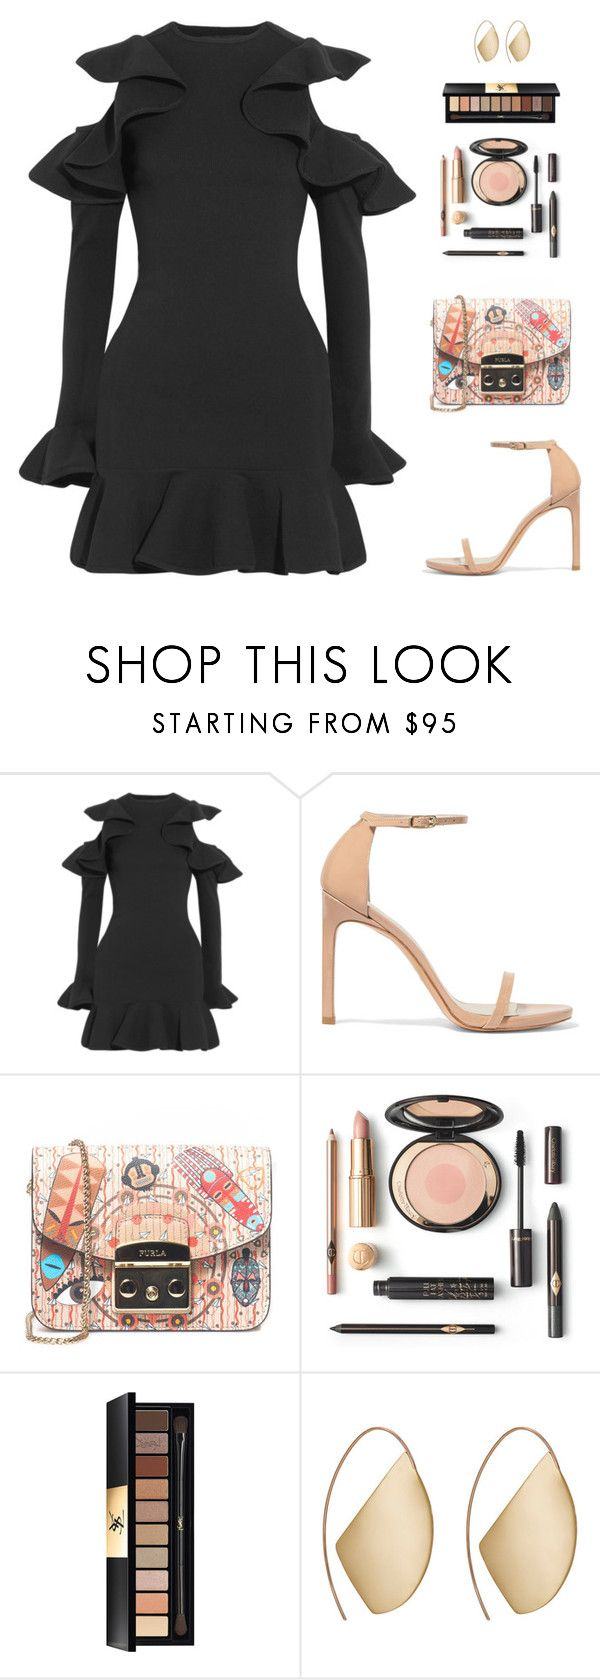 """Untitled #5092"" by mdmsb on Polyvore featuring Michael Lo Sordo, Stuart Weitzman, Furla, Yves Saint Laurent and Ana Khouri"